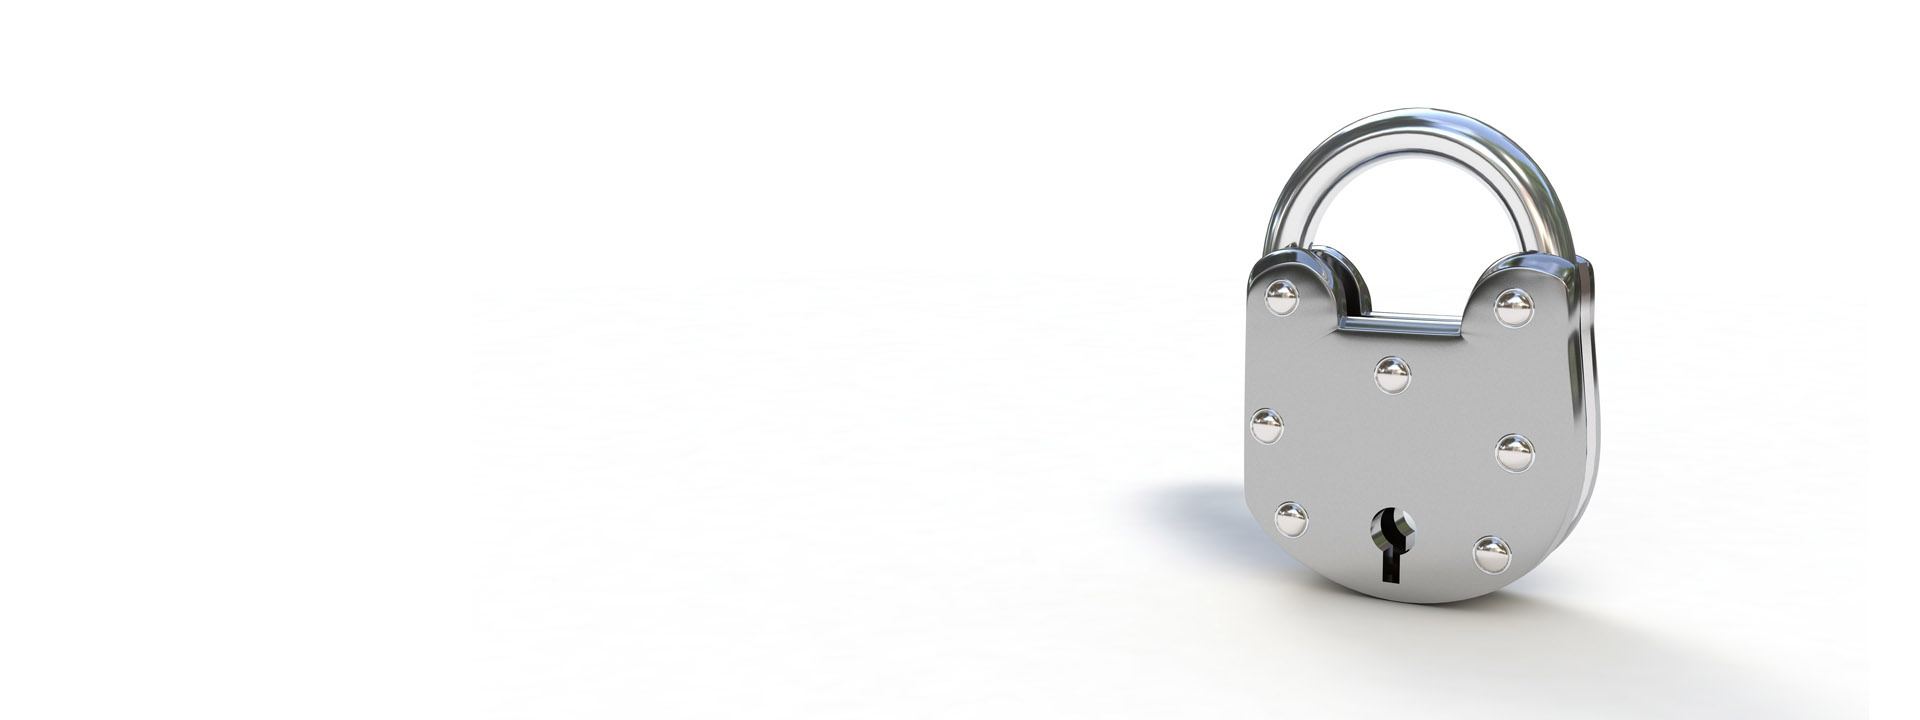 metal lock on white background